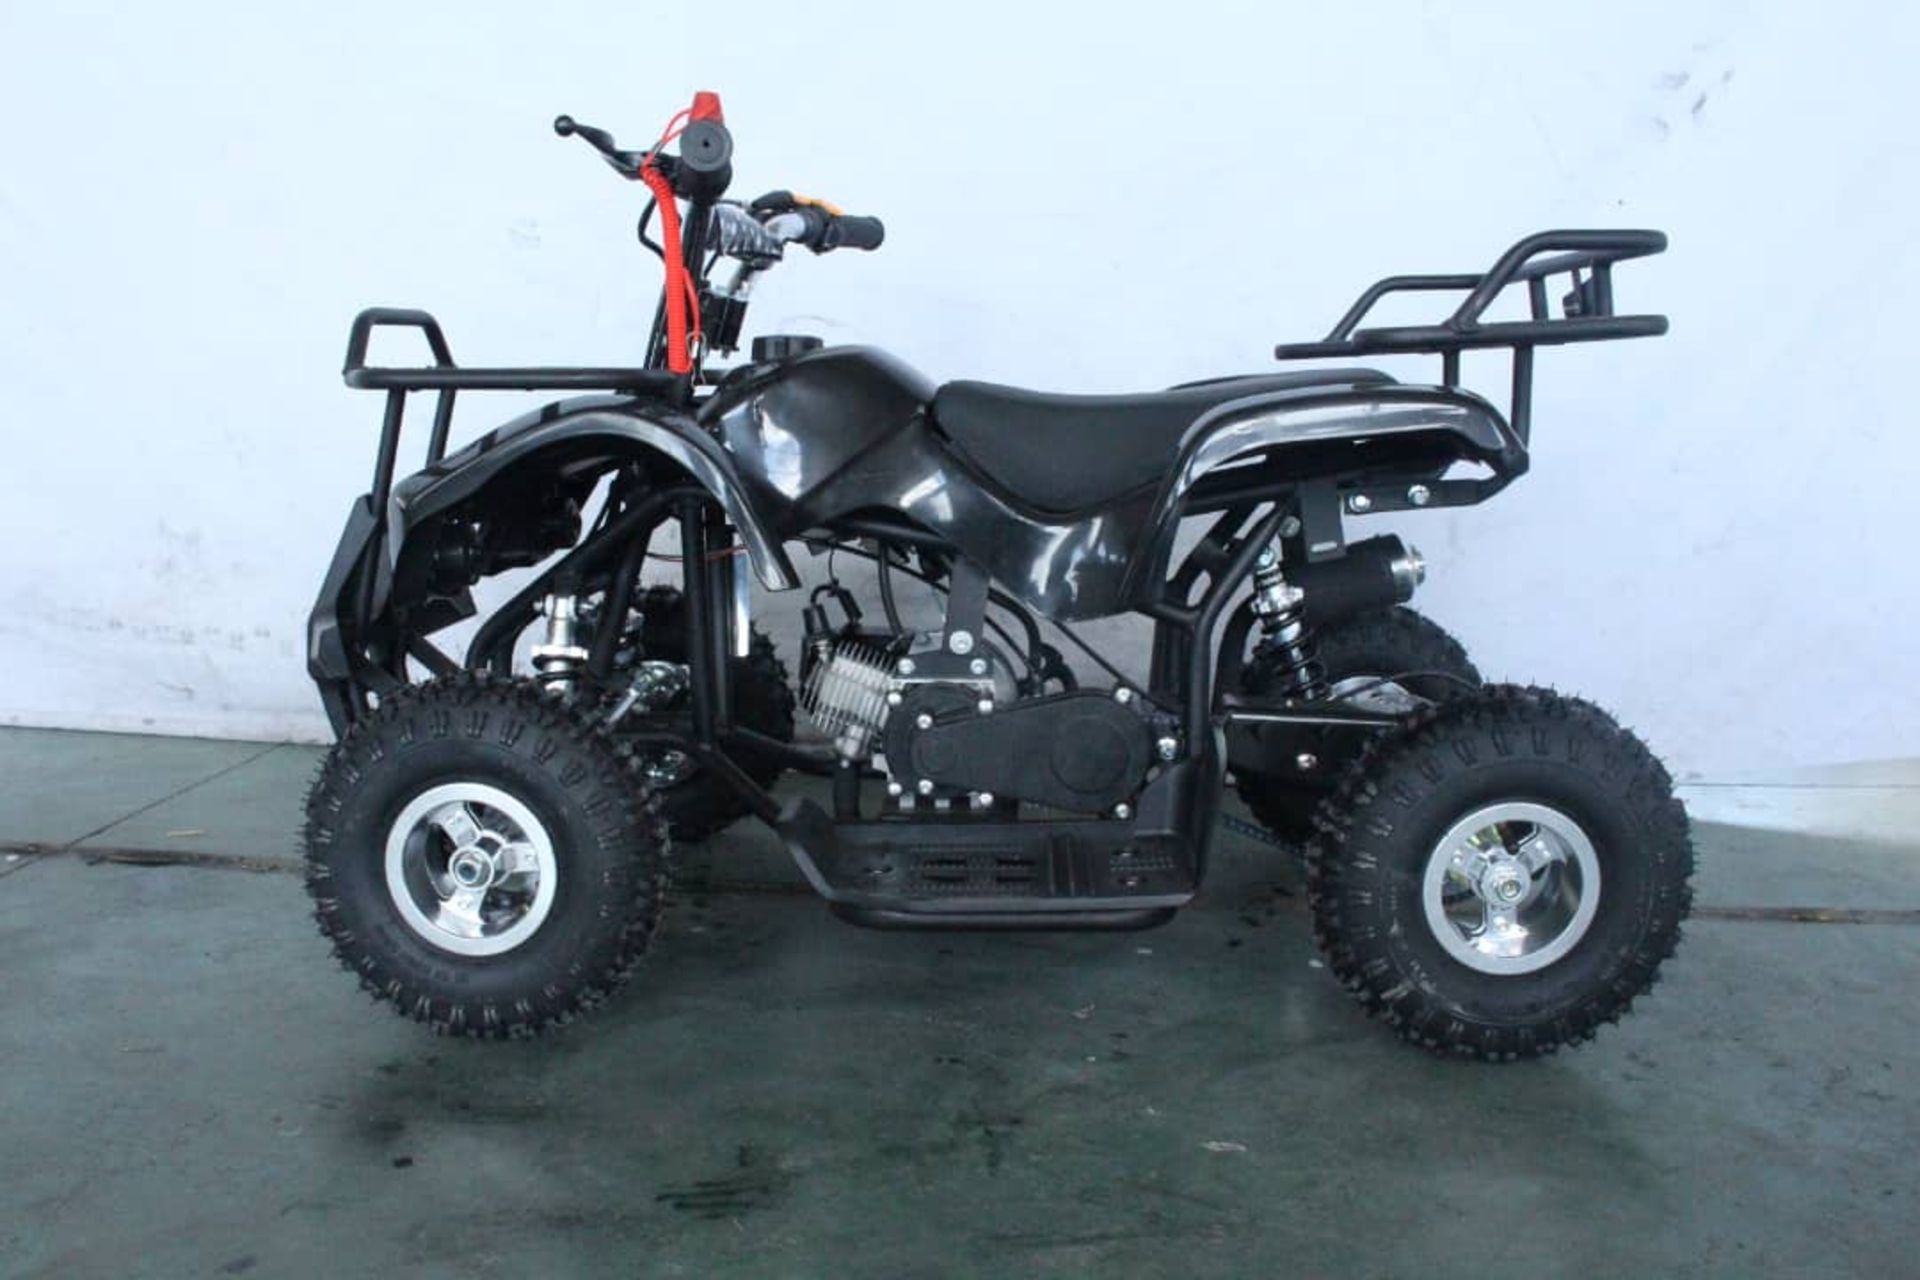 + VAT Brand New 49cc Hawk Mini Quad Bike - Colours May Vary - Full Front And Rear Suspension - Disk - Image 6 of 9